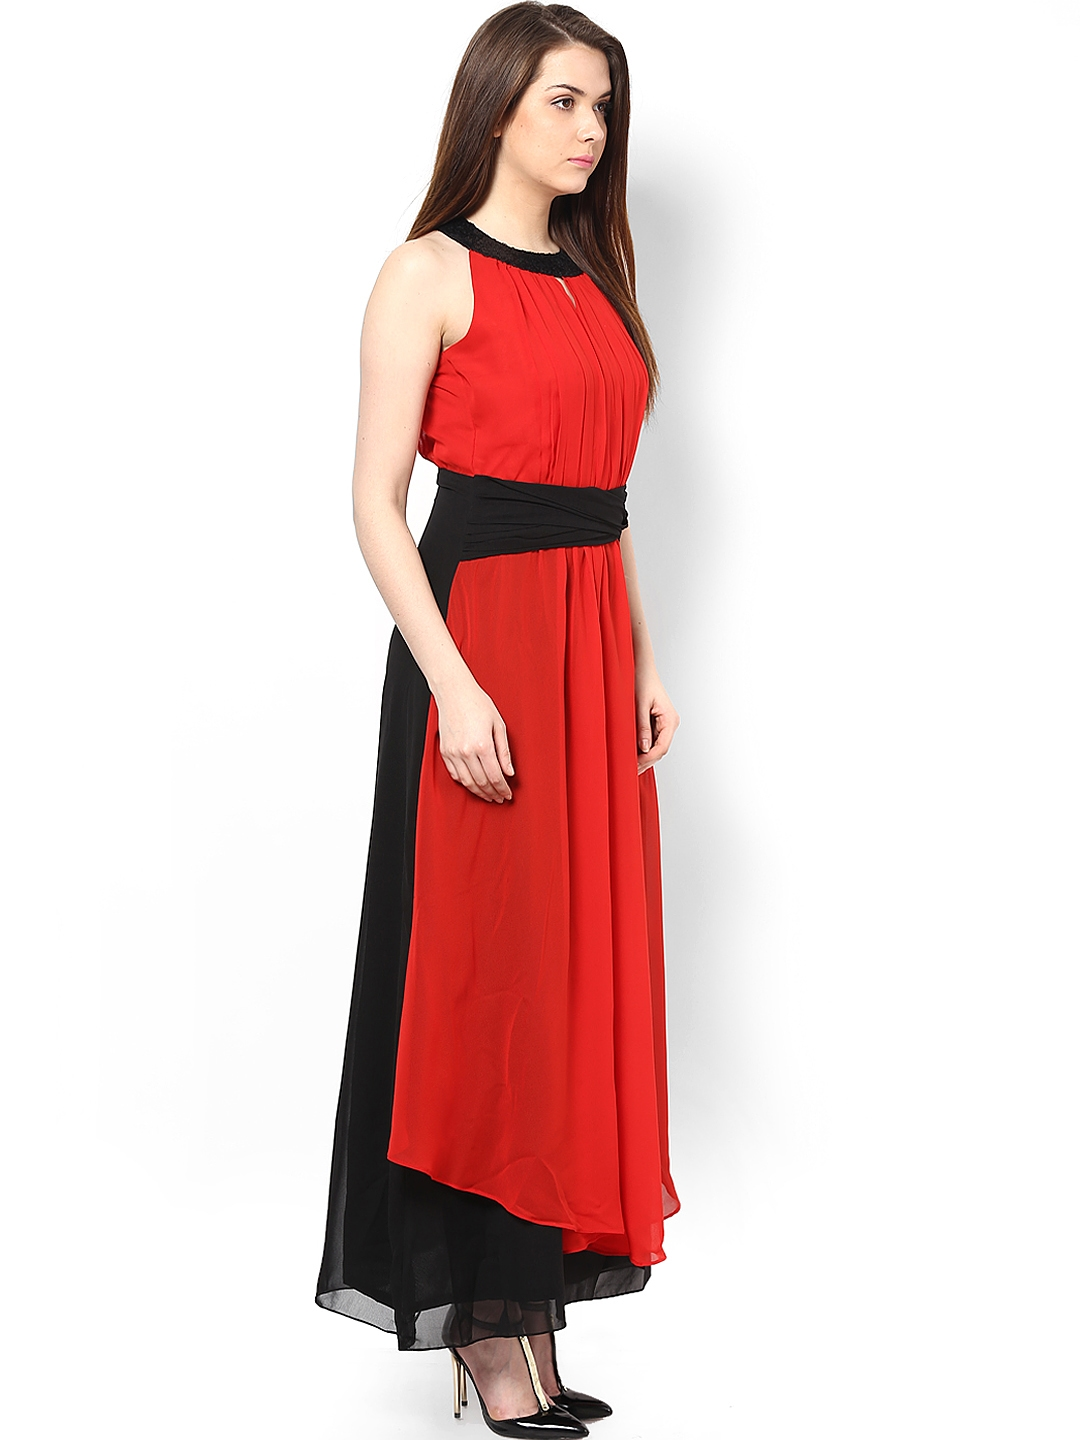 6899f5c577 Buy Athena Black & Red Polyester Georgette Maxi Dress - Dresses for ...